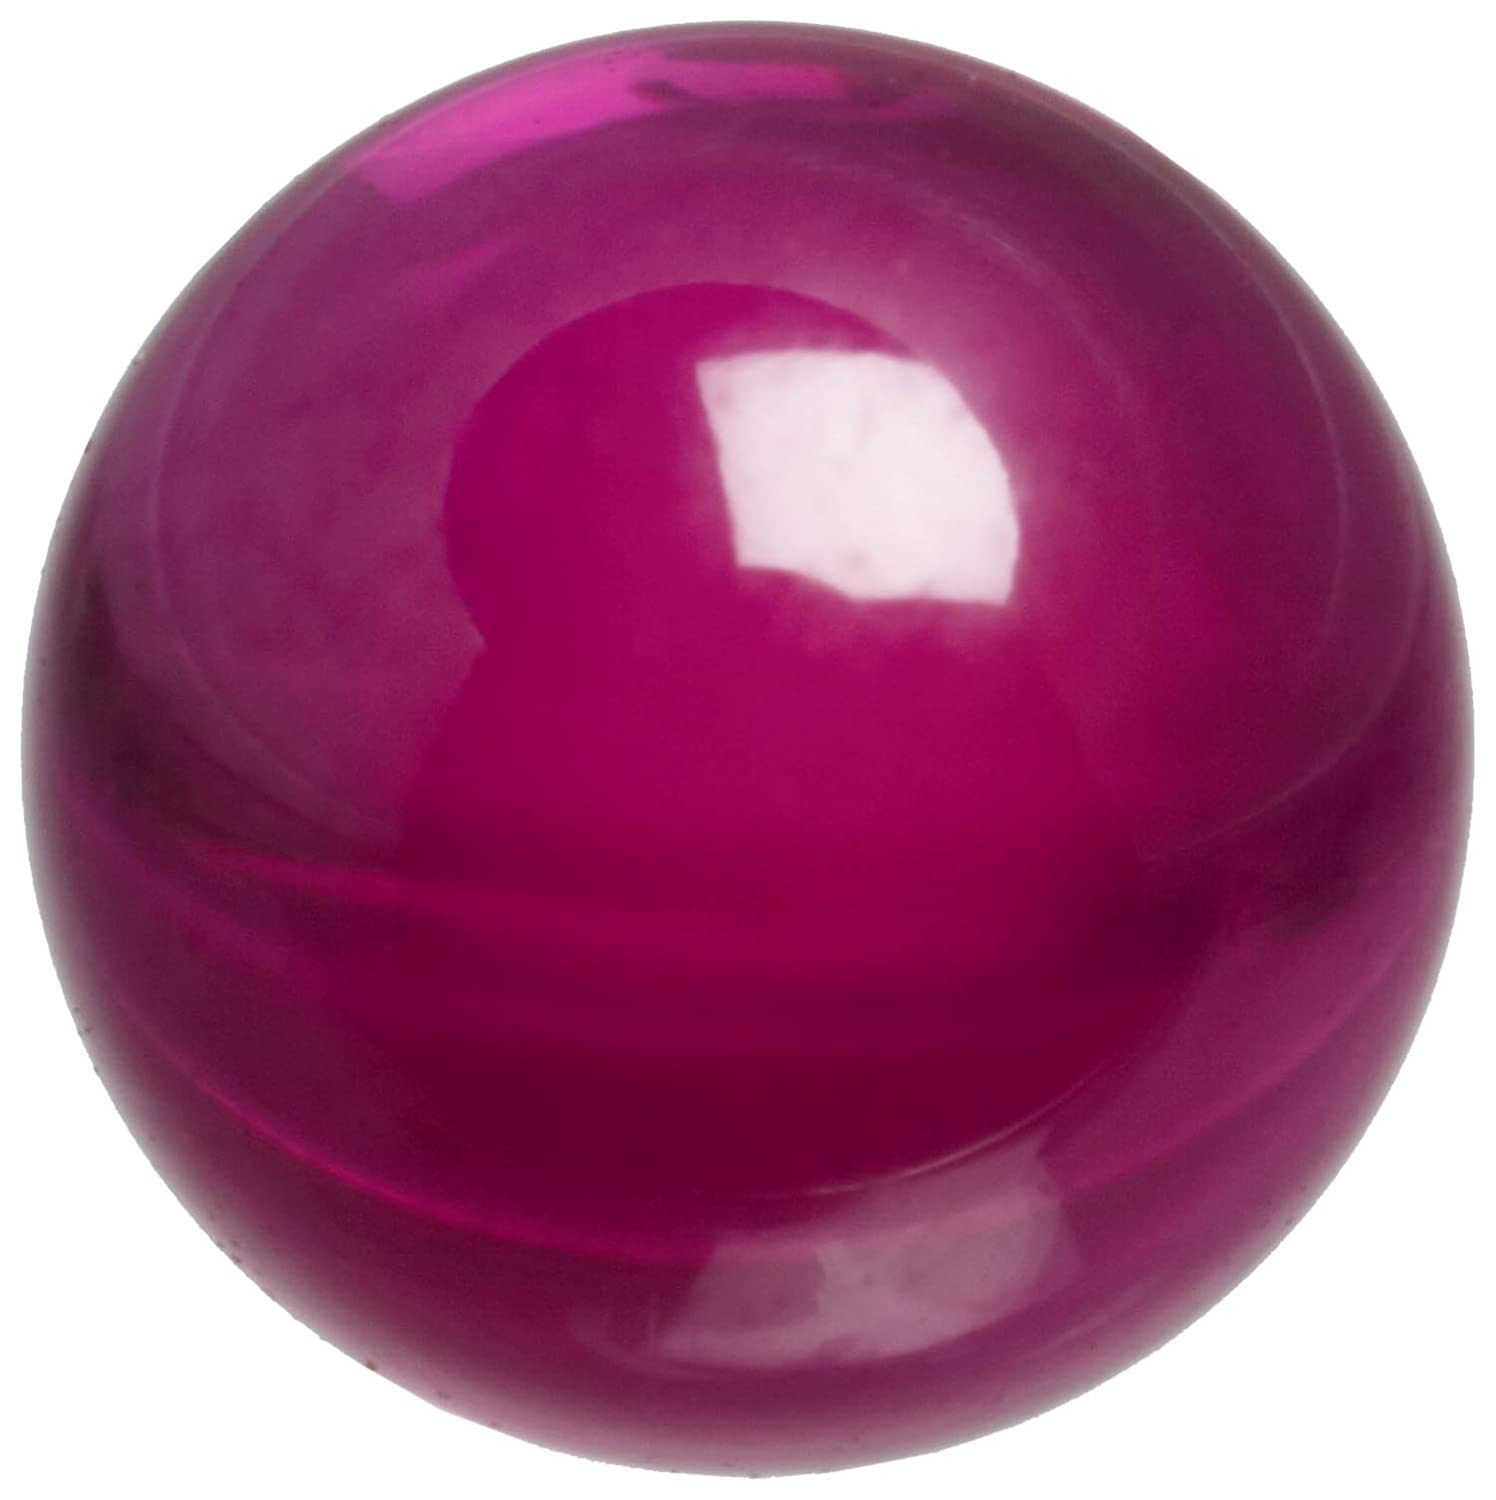 Synthetic Ruby Sphere, Grade 25, 0.1875' Diameter (Pack of 1) 0.1875 Diameter (Pack of 1) Small Parts